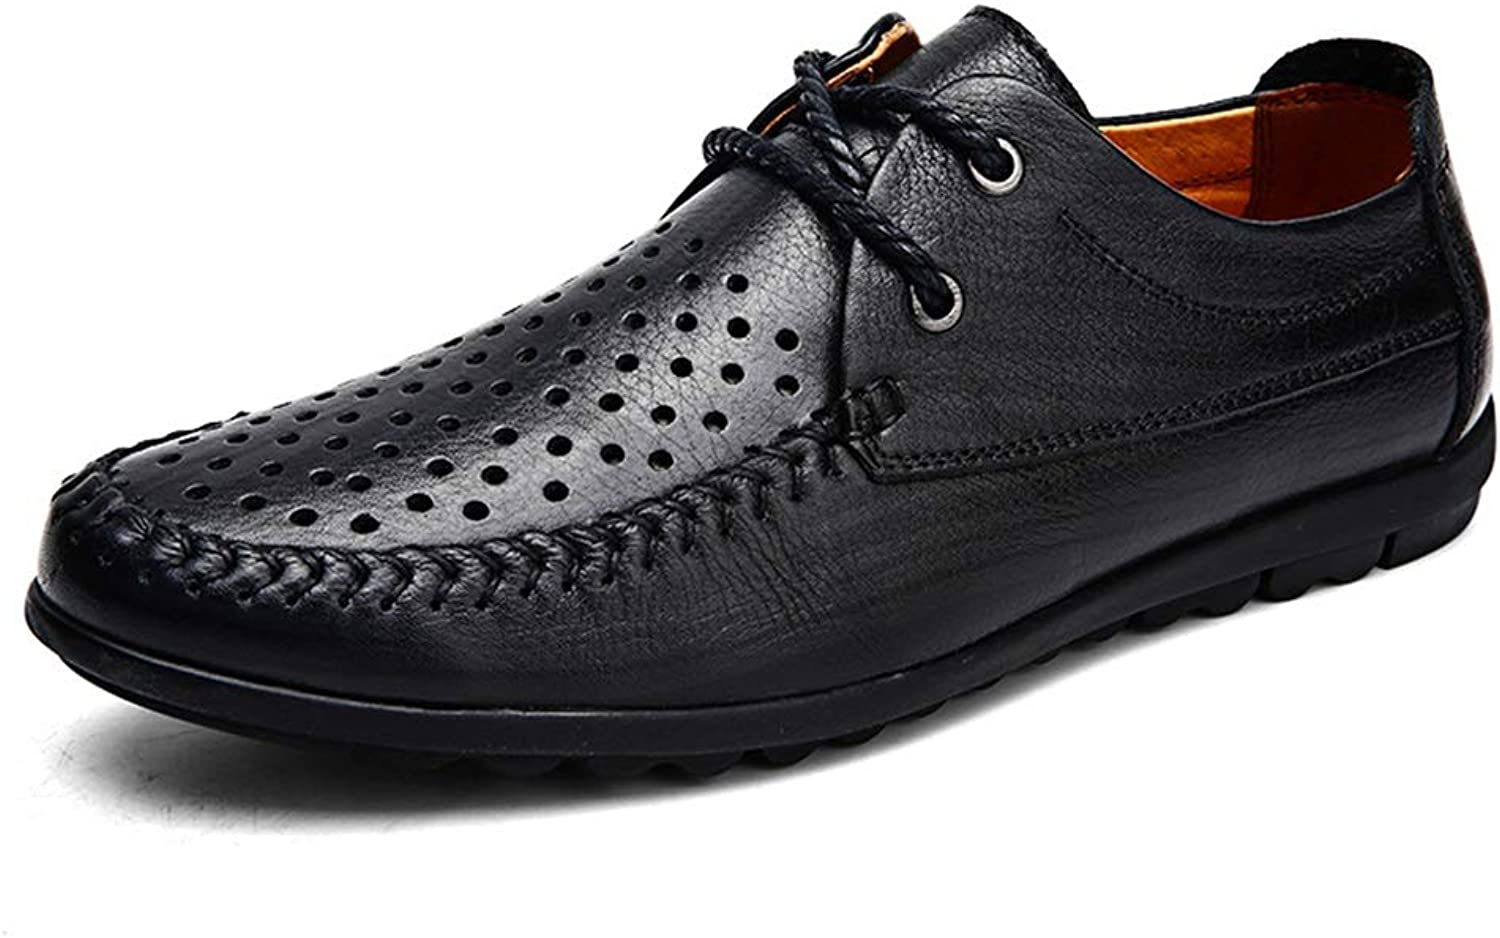 Oxford shoes for Men Formal shoes Lace Up Style OX Leather Simple Pure color (Hollow Optional) (color   Hollow Black, Size   9.5 D(M) US)